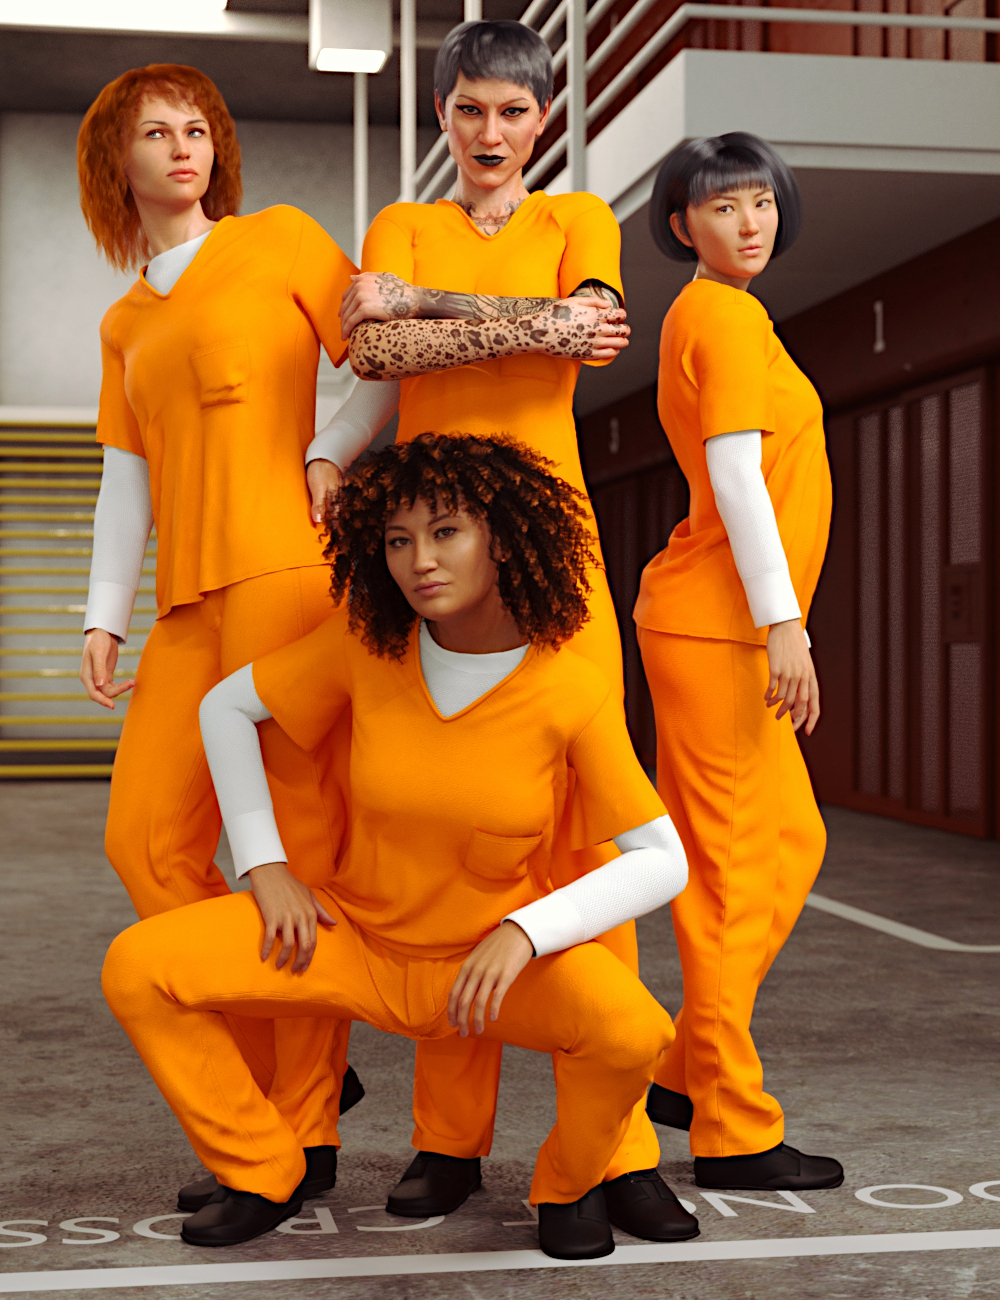 dForce Prison Inmate Clothing for Genesis 8 and 8.1 Females by: Toyen, 3D Models by Daz 3D